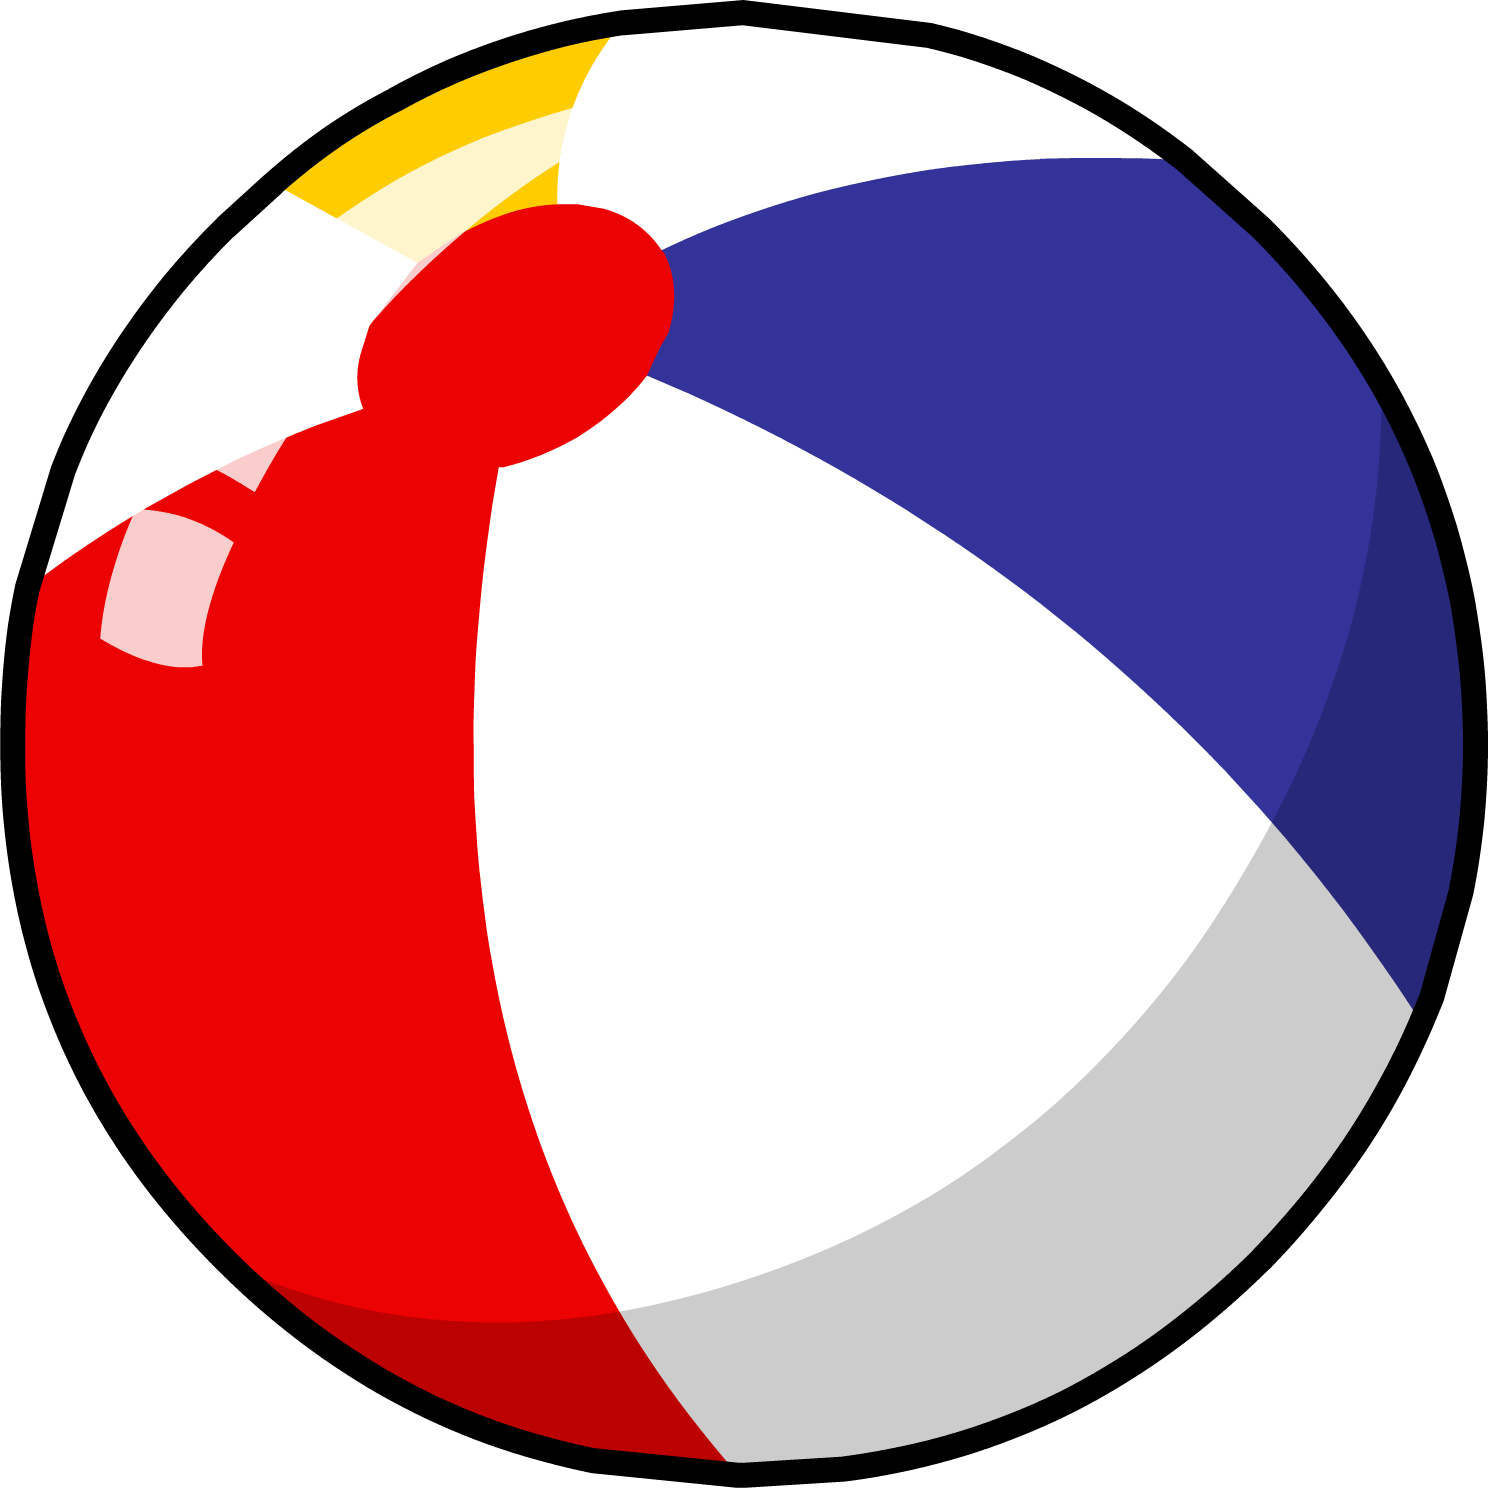 Clipart sun beach ball vector freeuse stock Beach Ball PNG Transparent Free Images | PNG Only vector freeuse stock